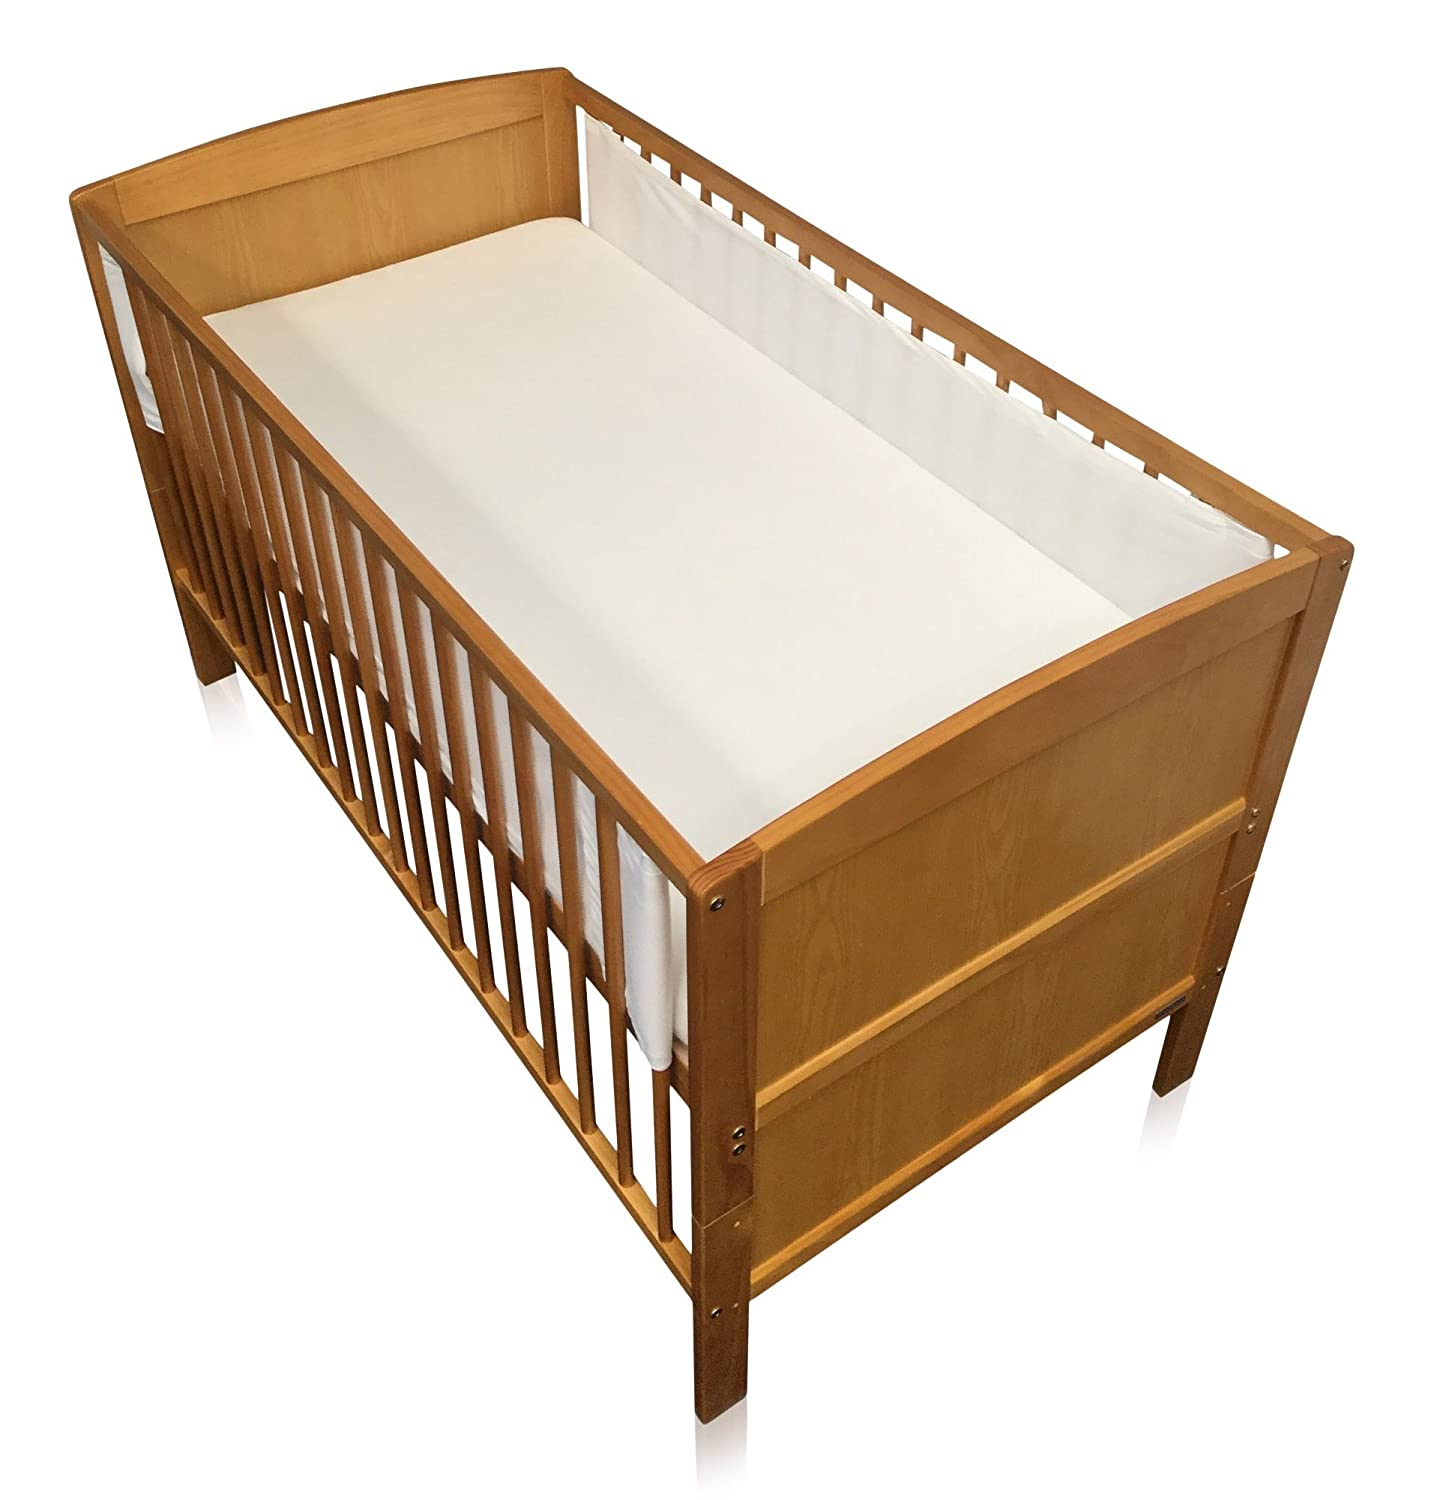 Breathe Easy Air Mesh Solid End Cot Bed Liner Set 2 Sided Unisex Nursery Cot Bed Bumper White 2 x Liners Each 150cm x 28cm (for Solid End Cots As Pictured) Babycurls